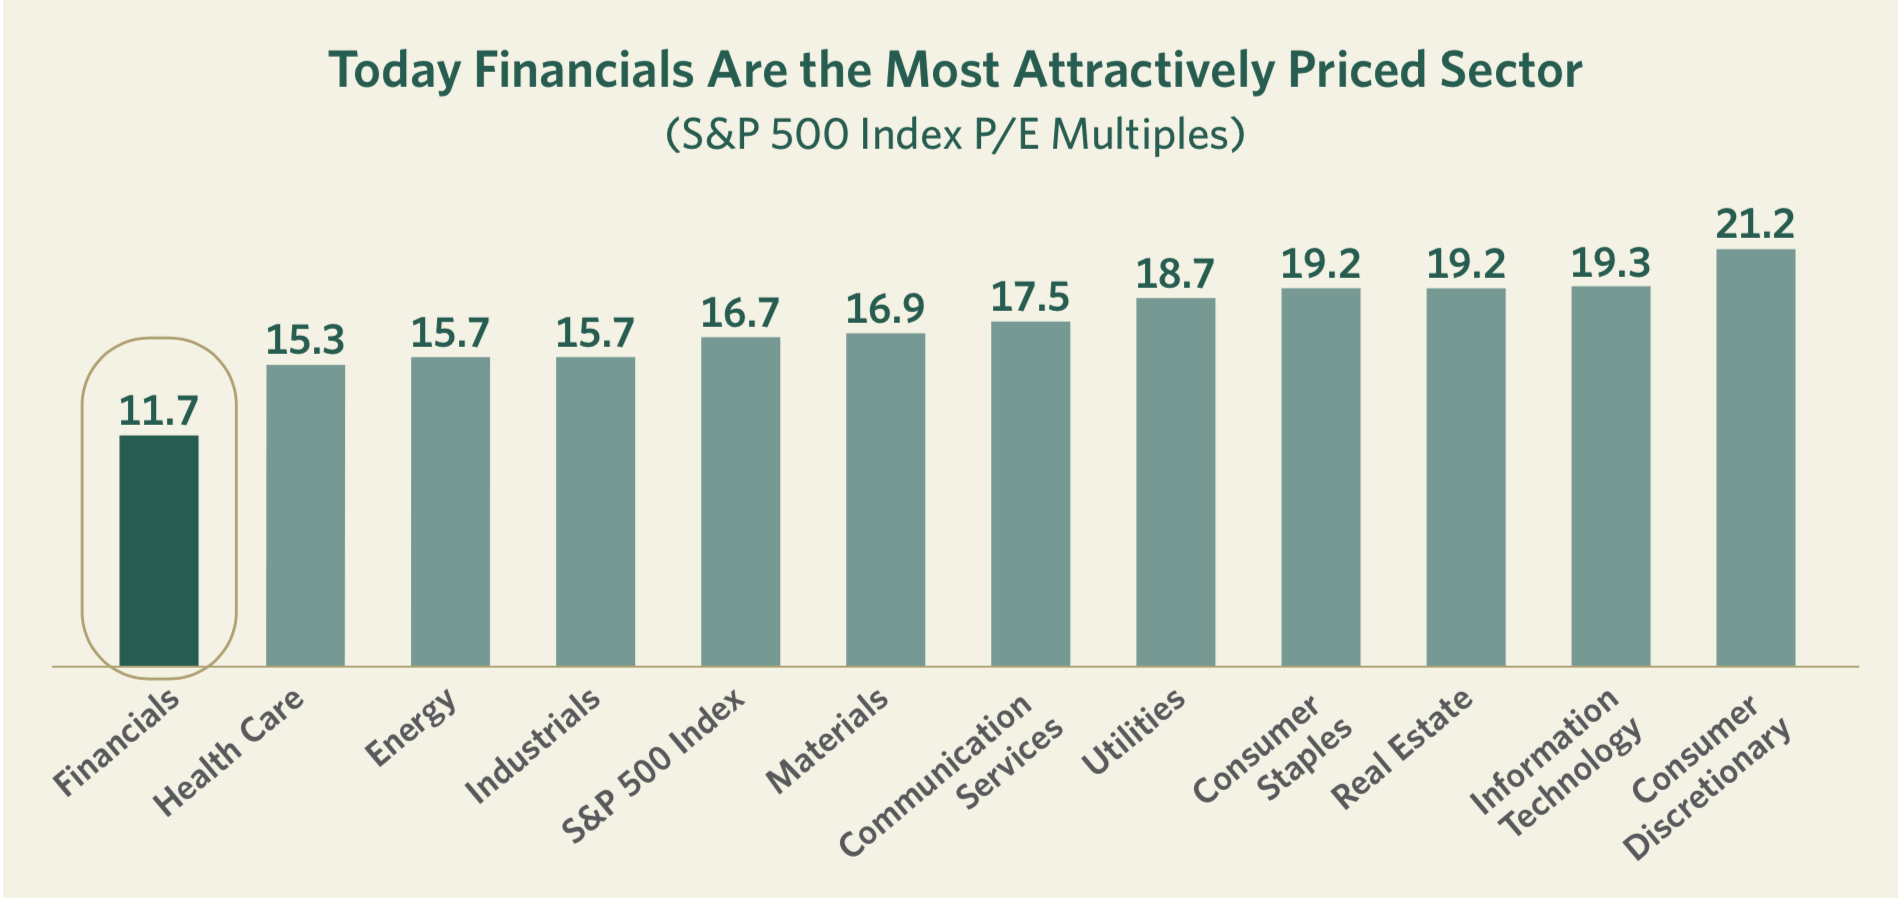 Attractively Priced Sector